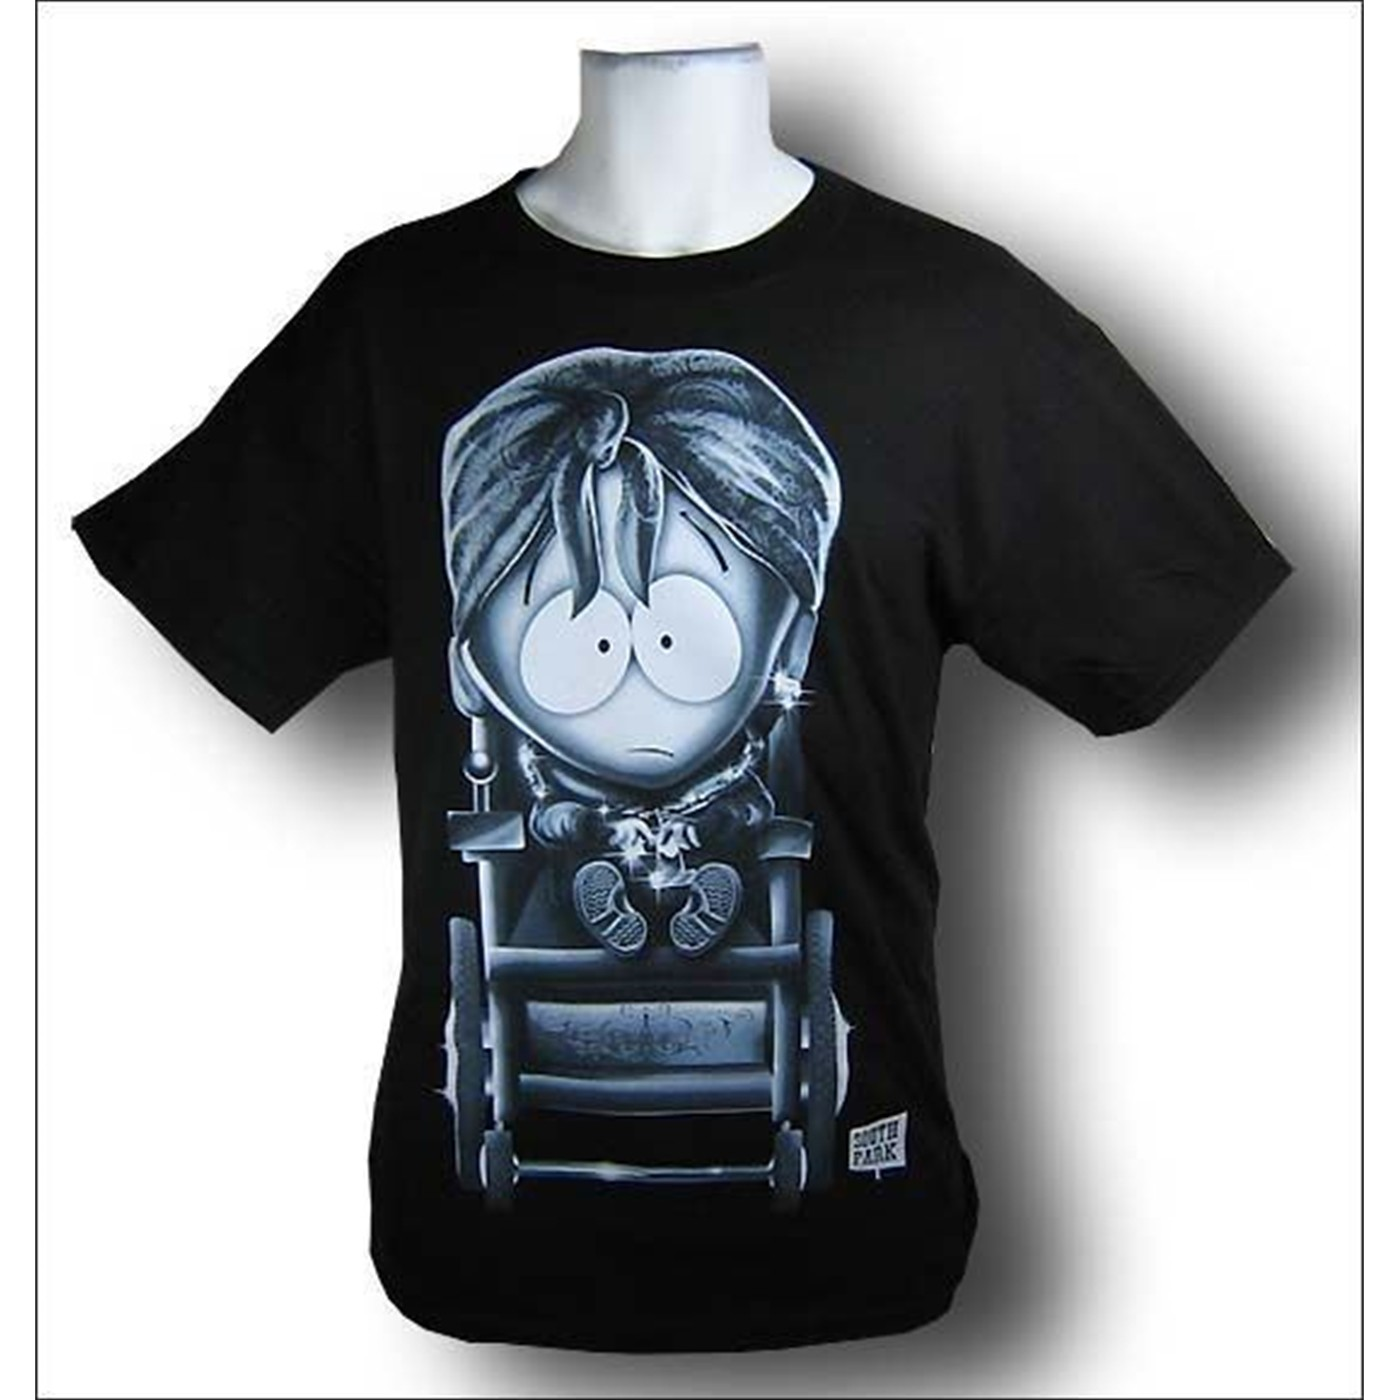 South Park Pimpin' Timmy T-Shirt